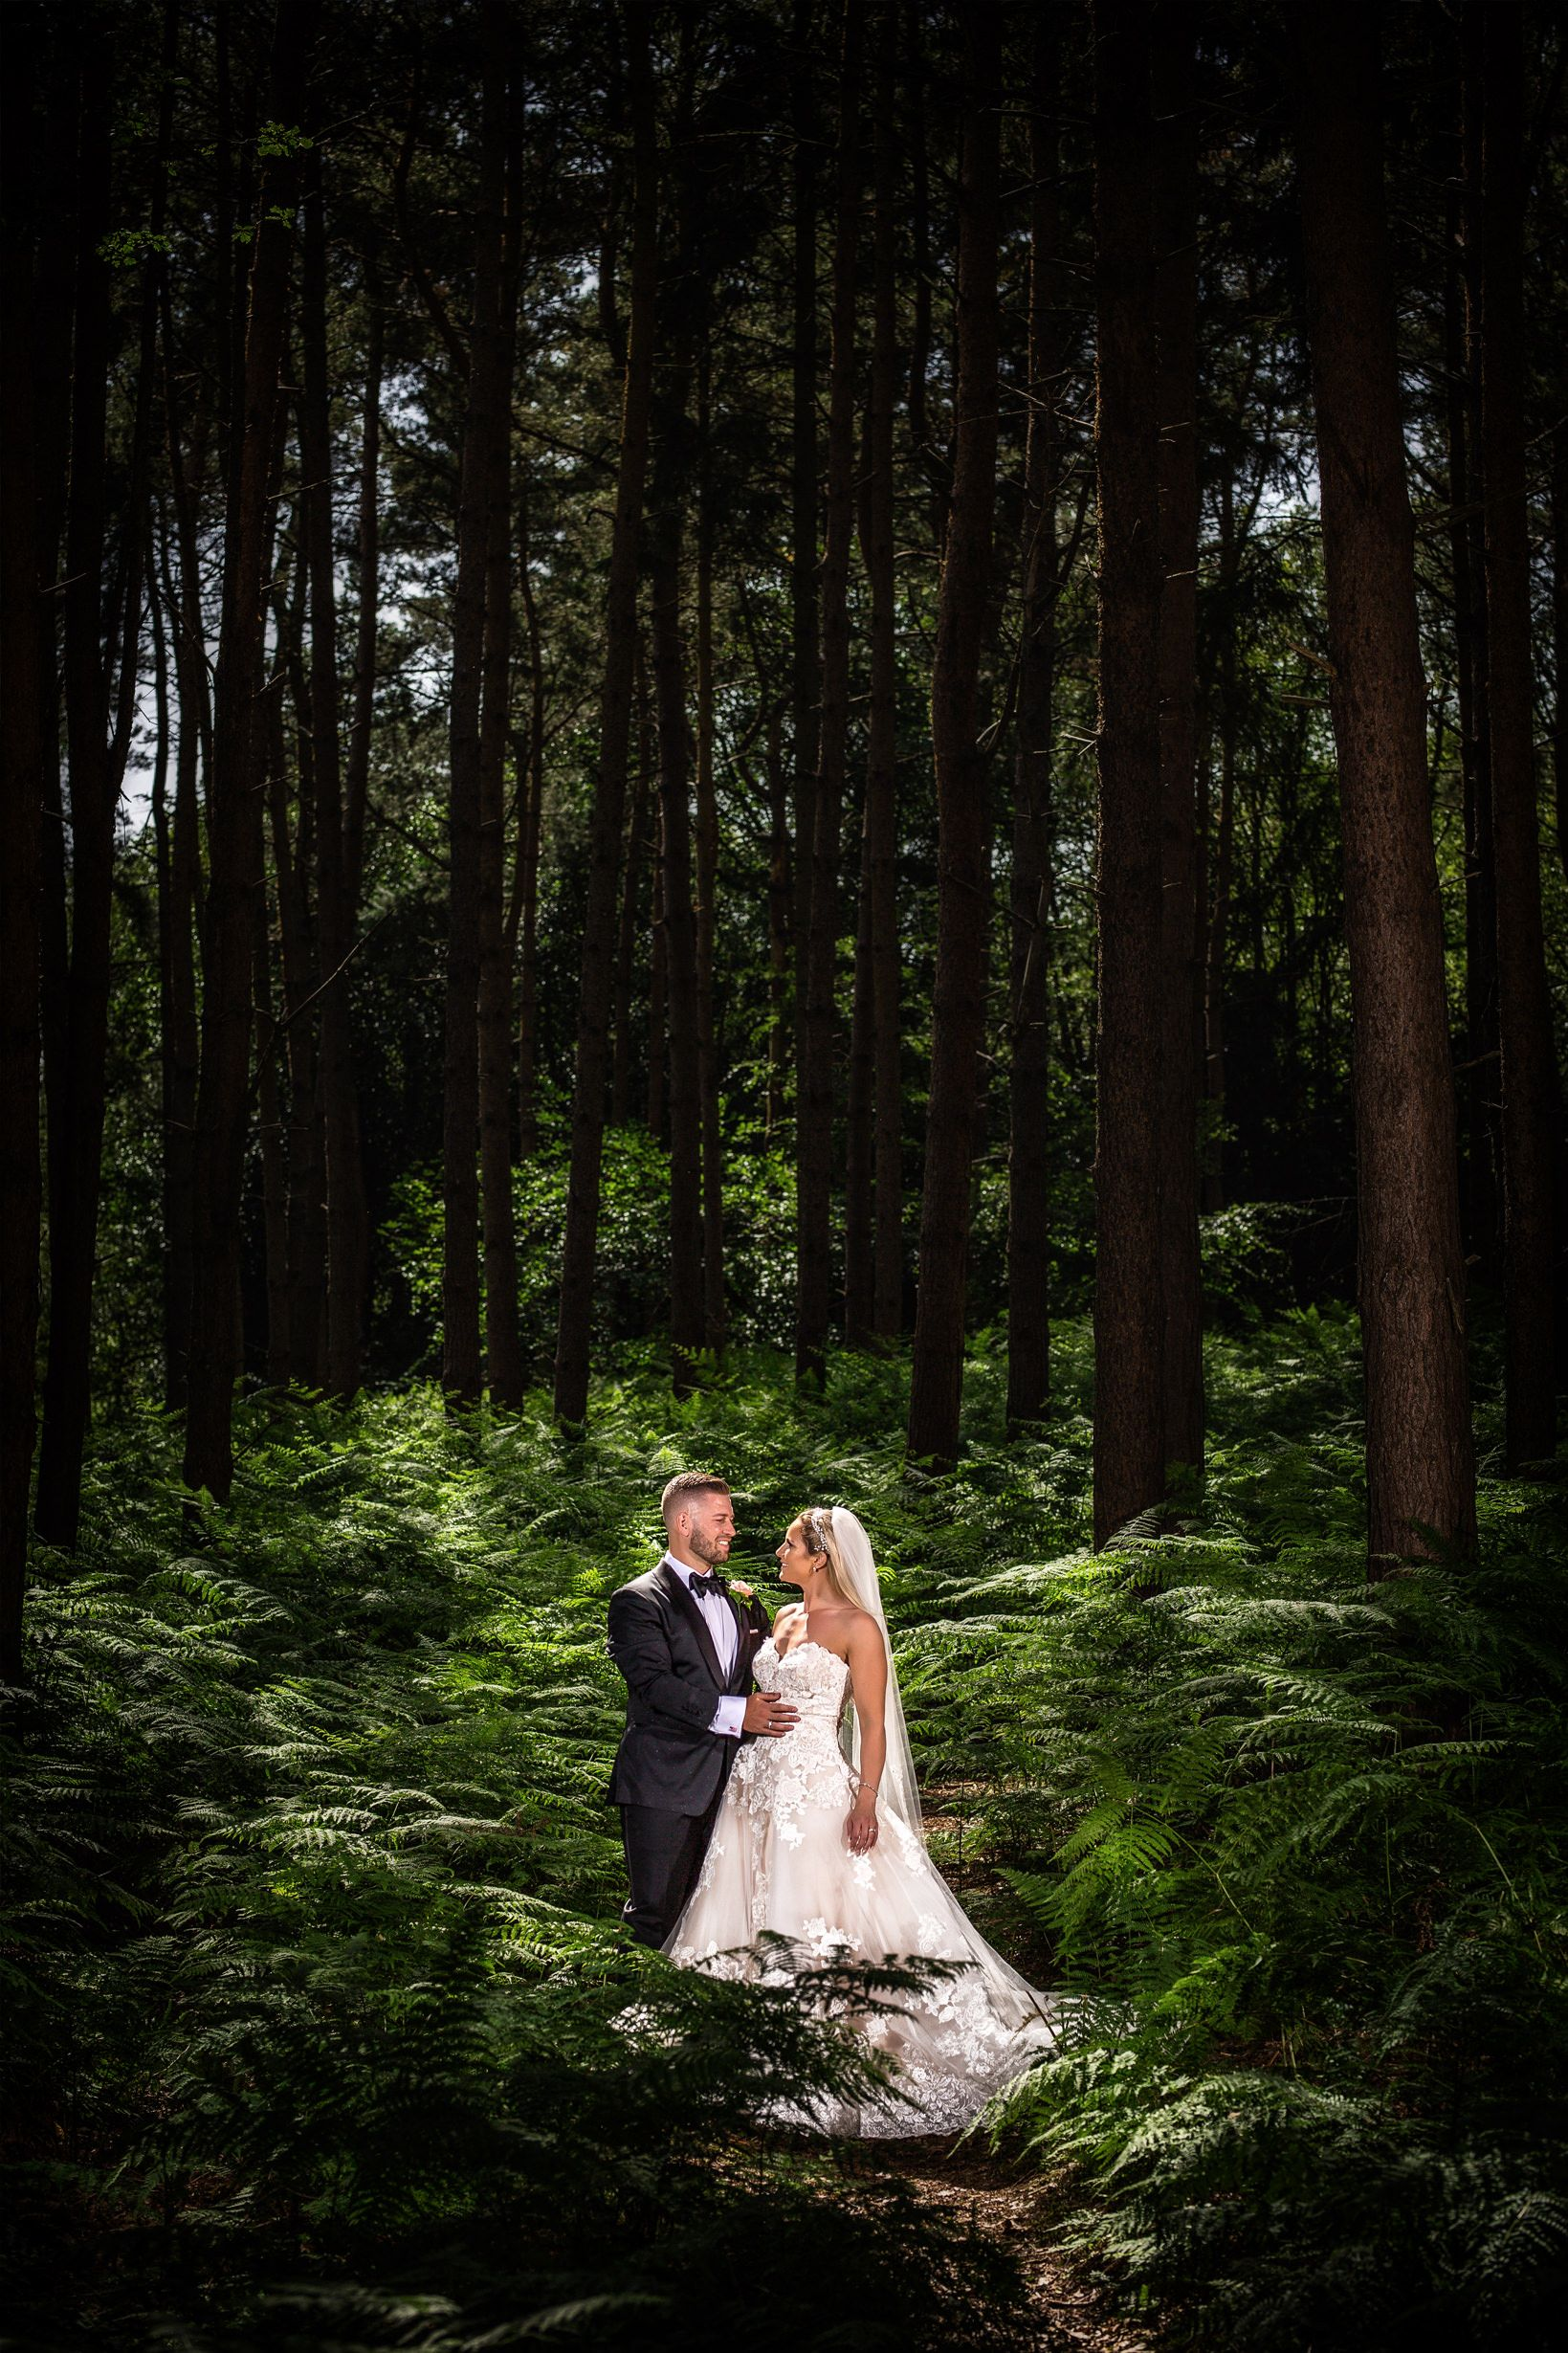 Suited groom and bride in white dress stand together amongst the tall trees at Peckforton Castle forest